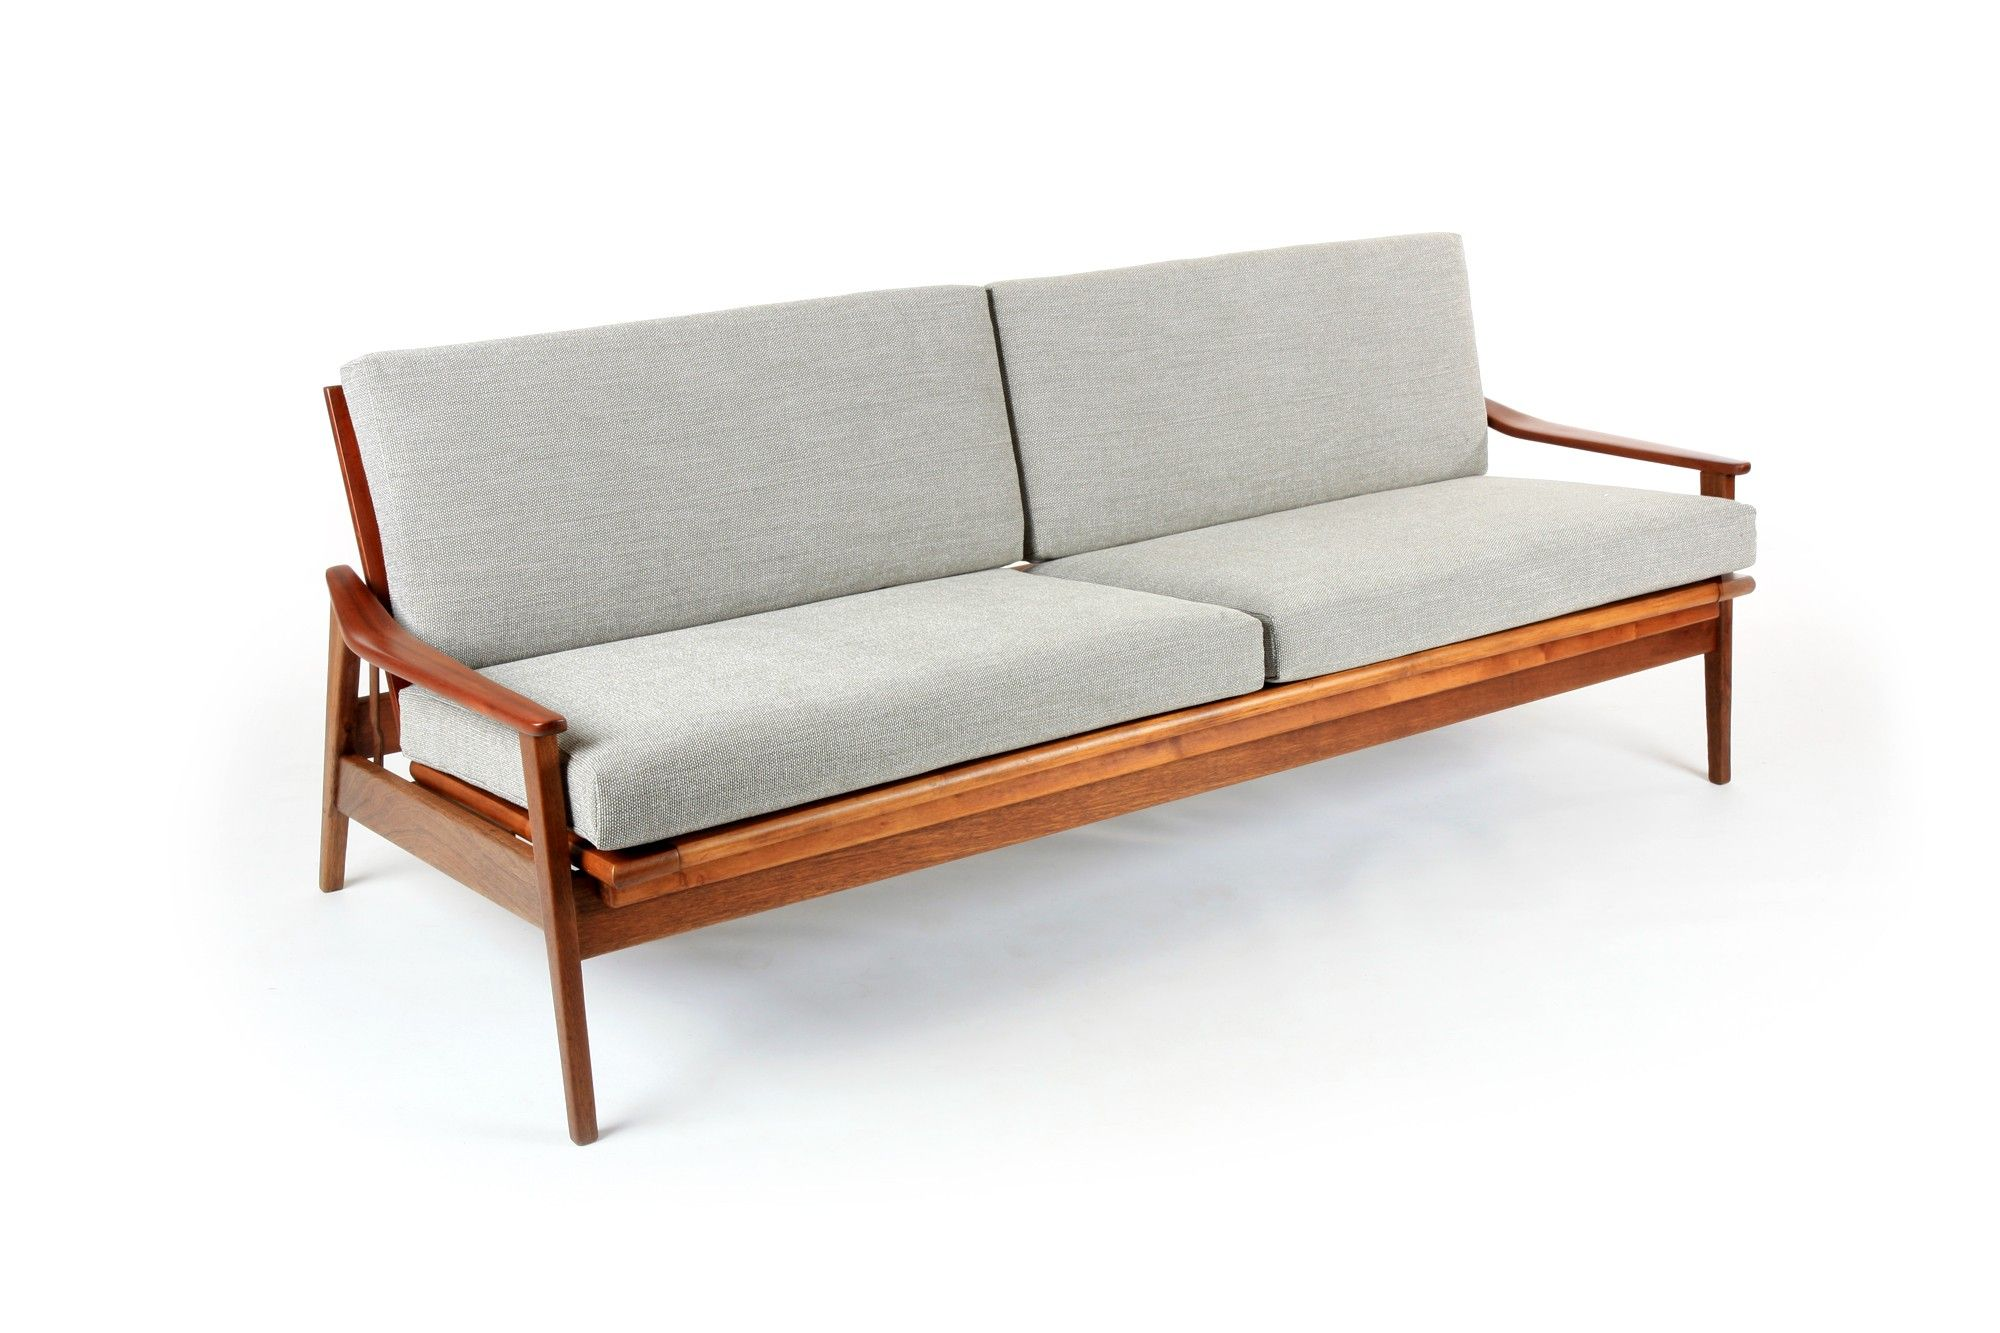 A Fold Down Sofa Daybed In Mahogany By Morgan Furniture Mr